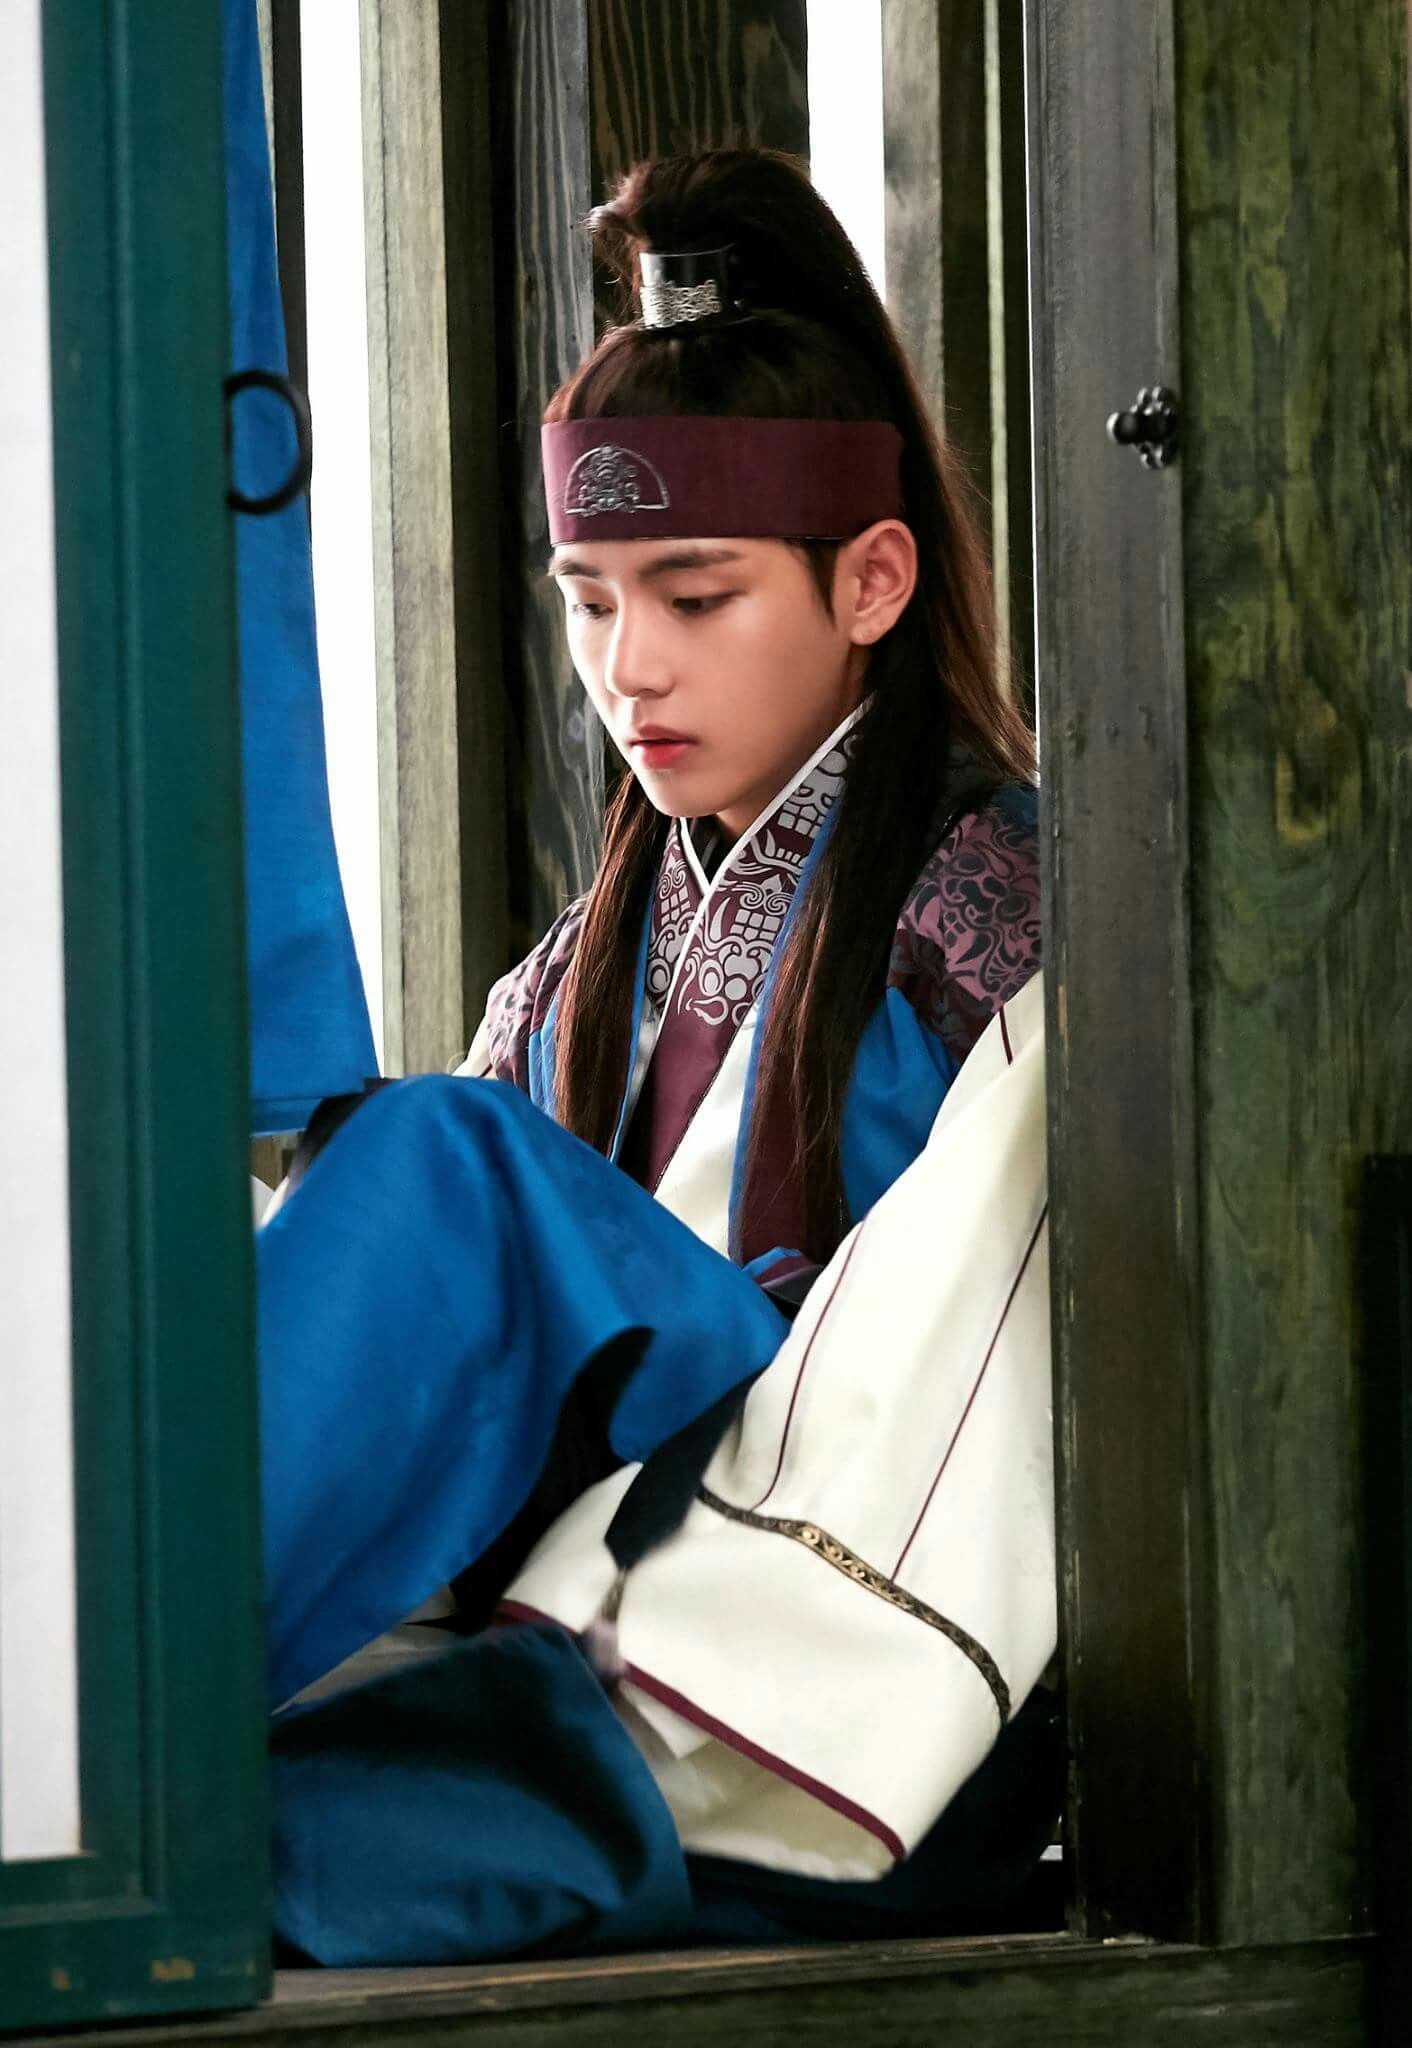 Taehyung ❤ Hansung in Hwarang Photo! #BTS #방탄소년단